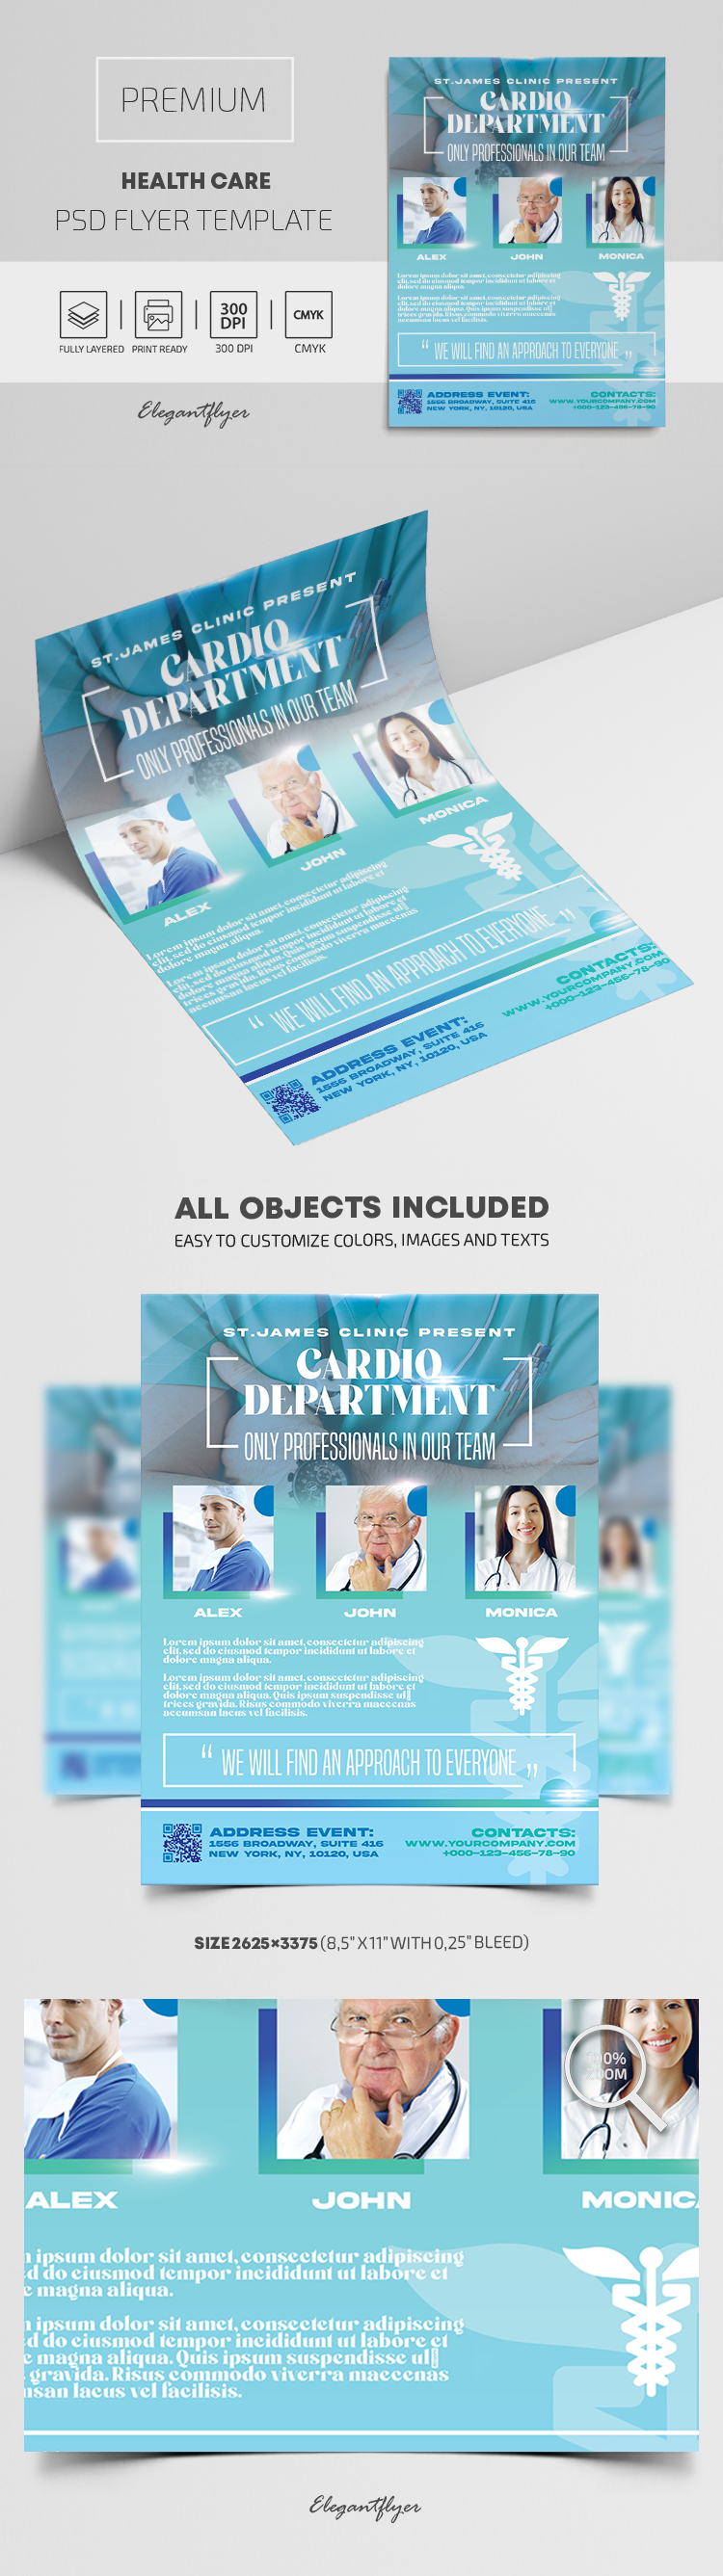 Health Care – Premium PSD Flyer Template